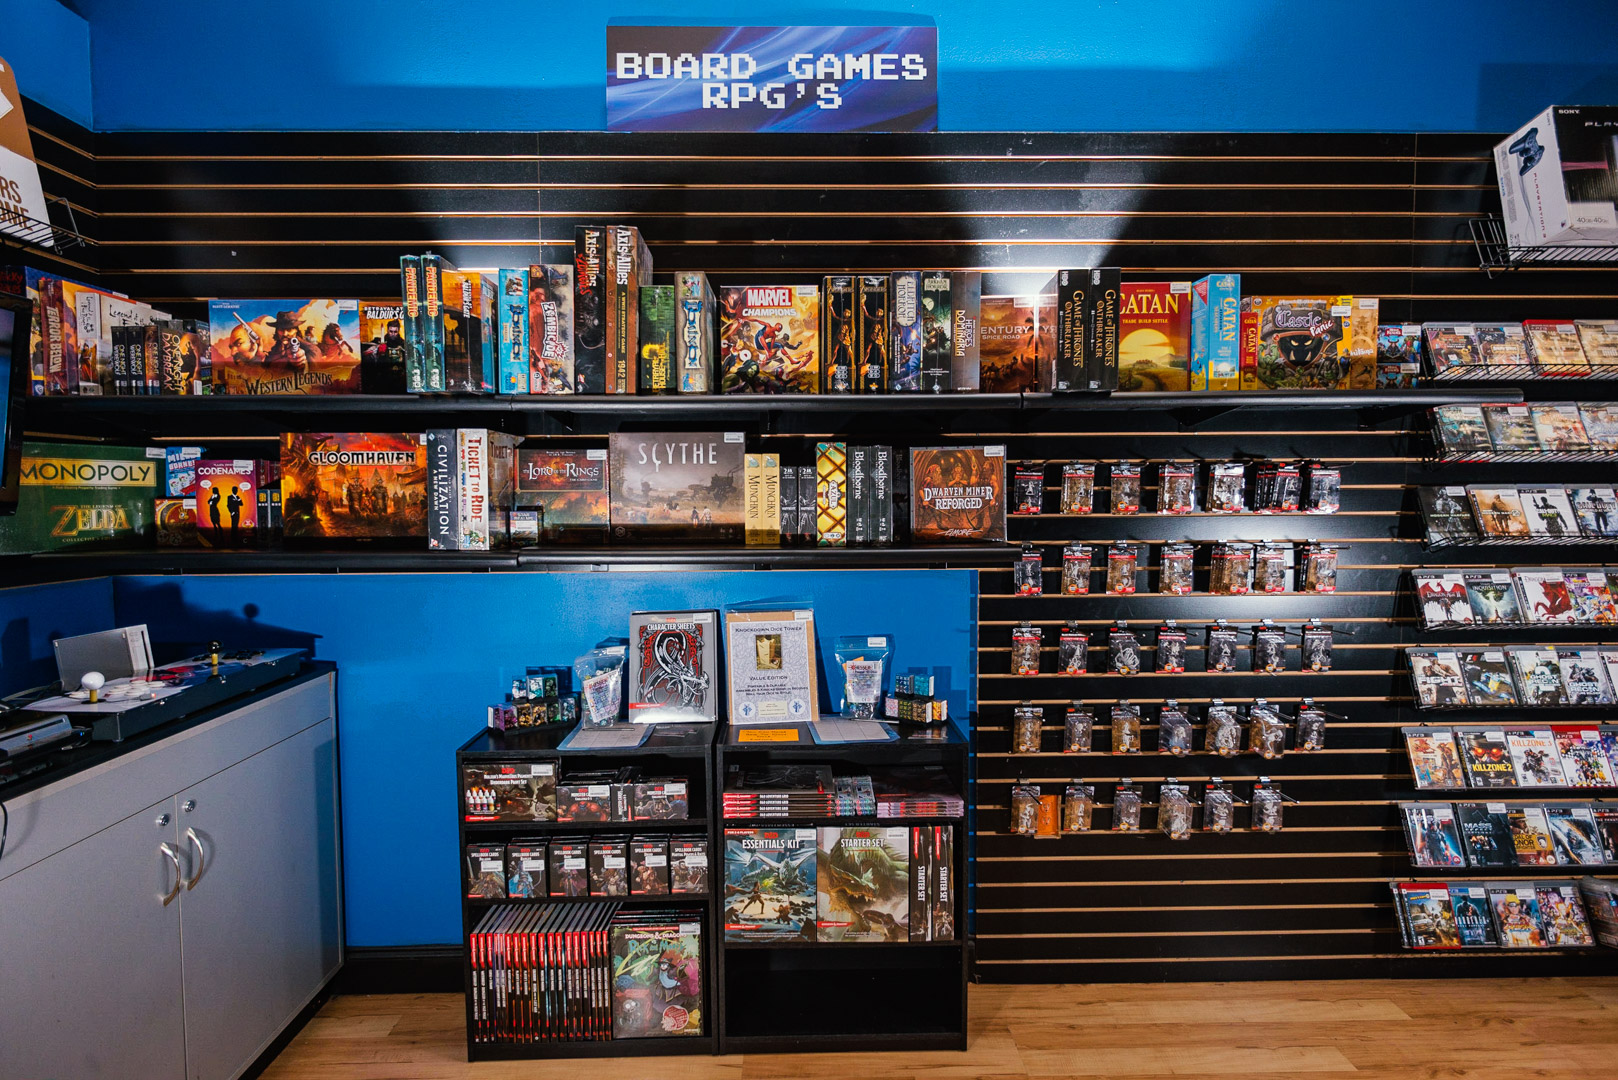 Ready set game board games and RPG section.